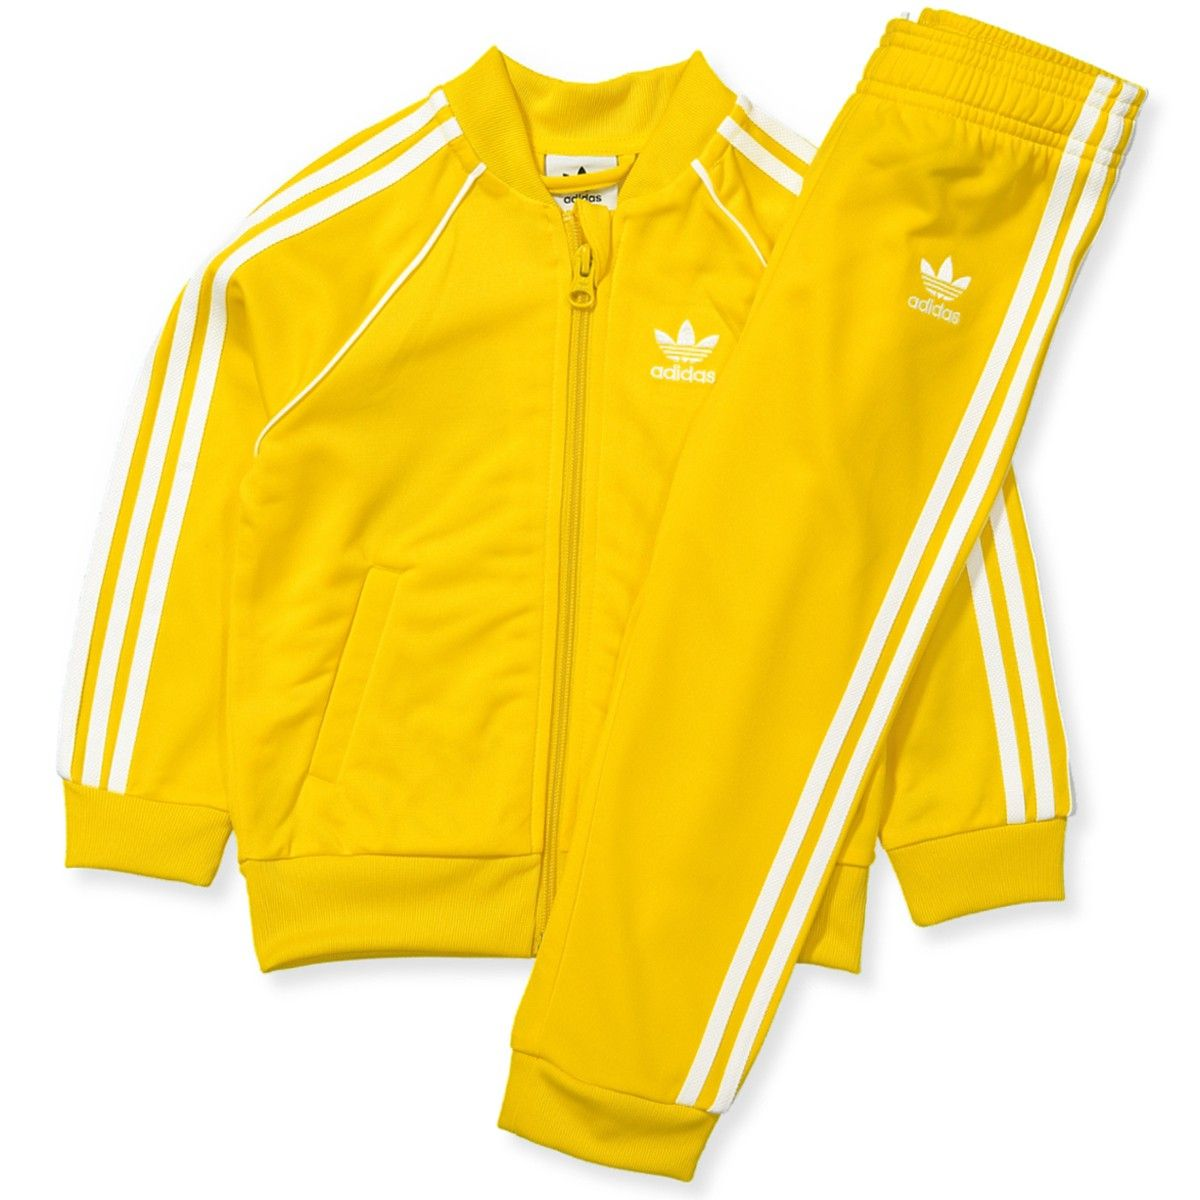 5215d7e2 Image result for adidas yellow tracksuit | Shoplifter | Adidas ...